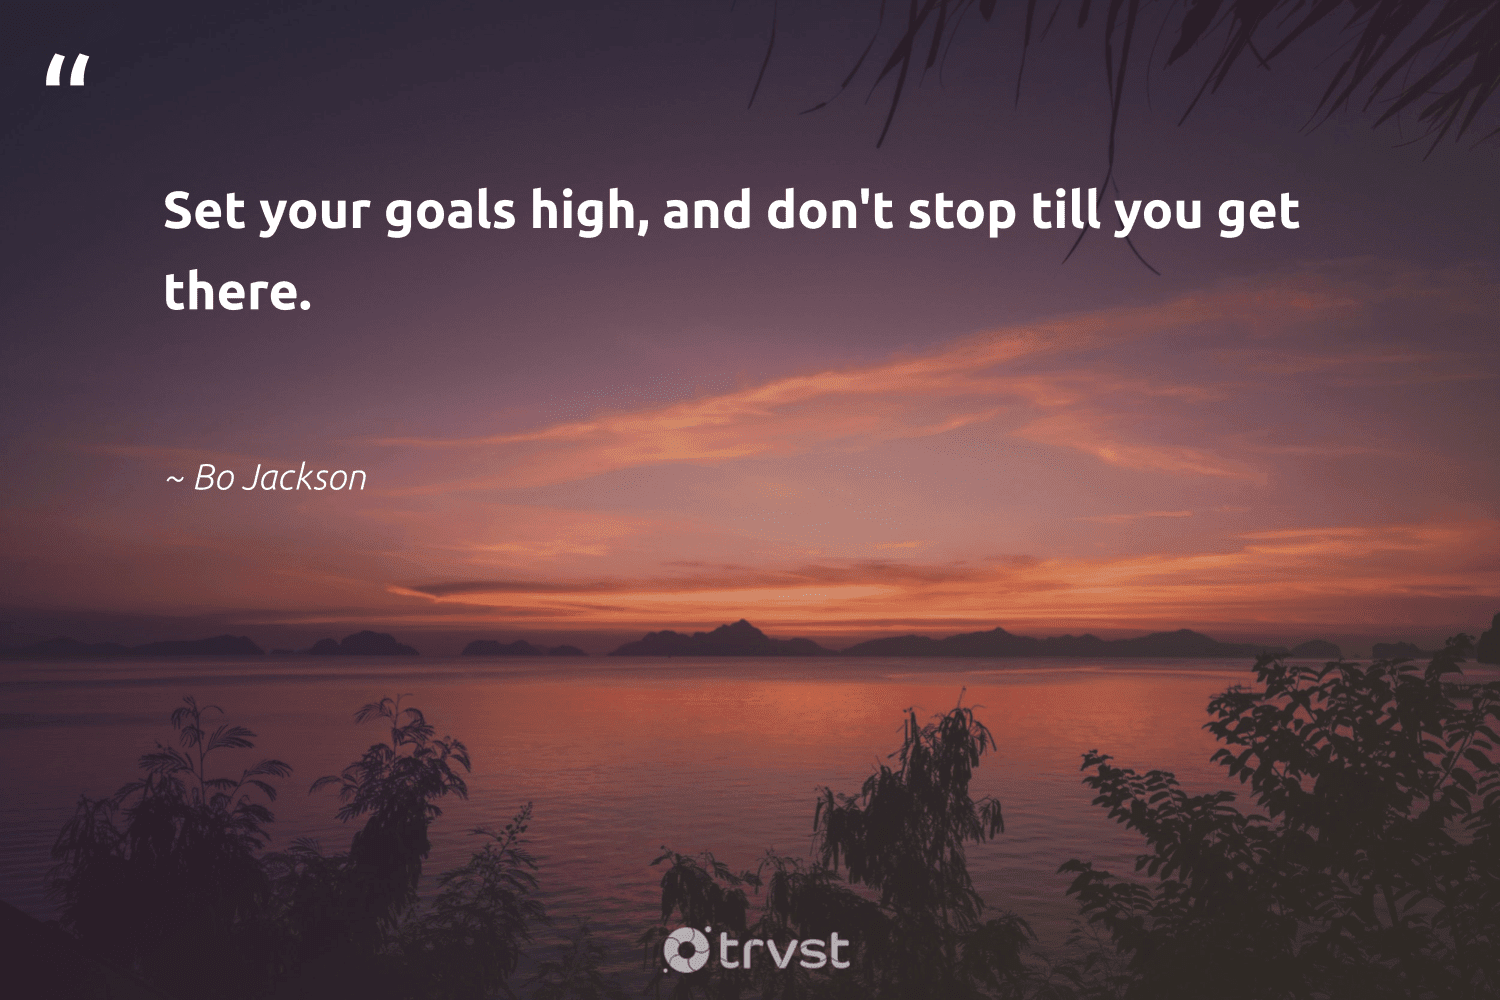 """""""Set your goals high, and don't stop till you get there.""""  - Bo Jackson #trvst #quotes #goals #mindful #begreat #nevergiveup #takeaction #creativemindset #futureofwork #mindset #dogood #positivity"""